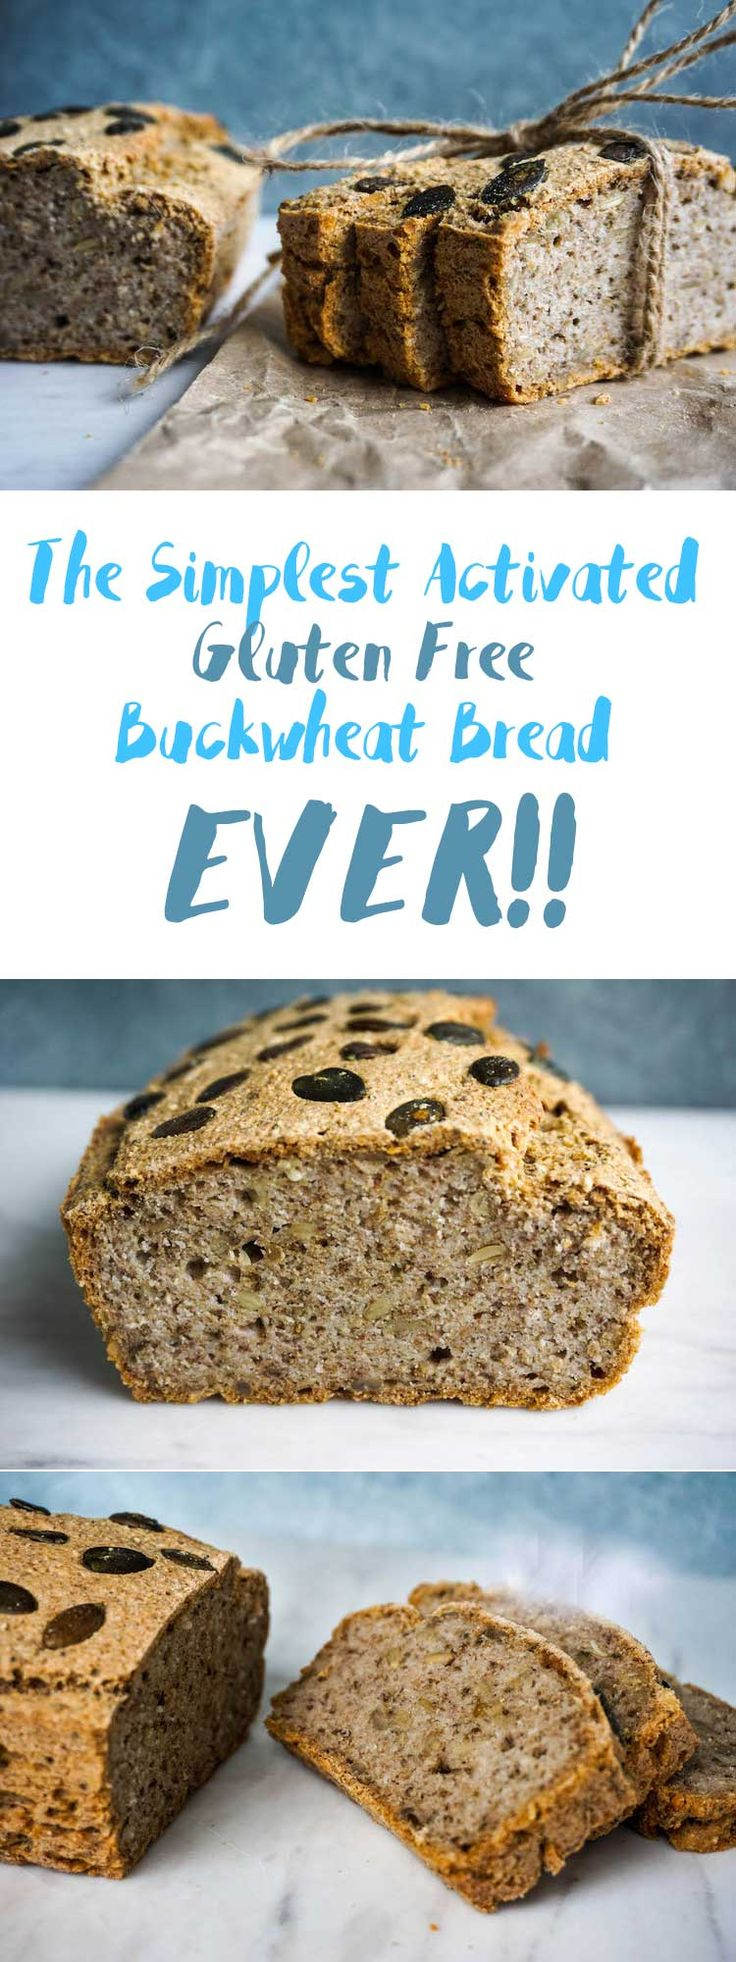 The Simplest Activated Buckwheat Bread Ever | Sproutly Stories